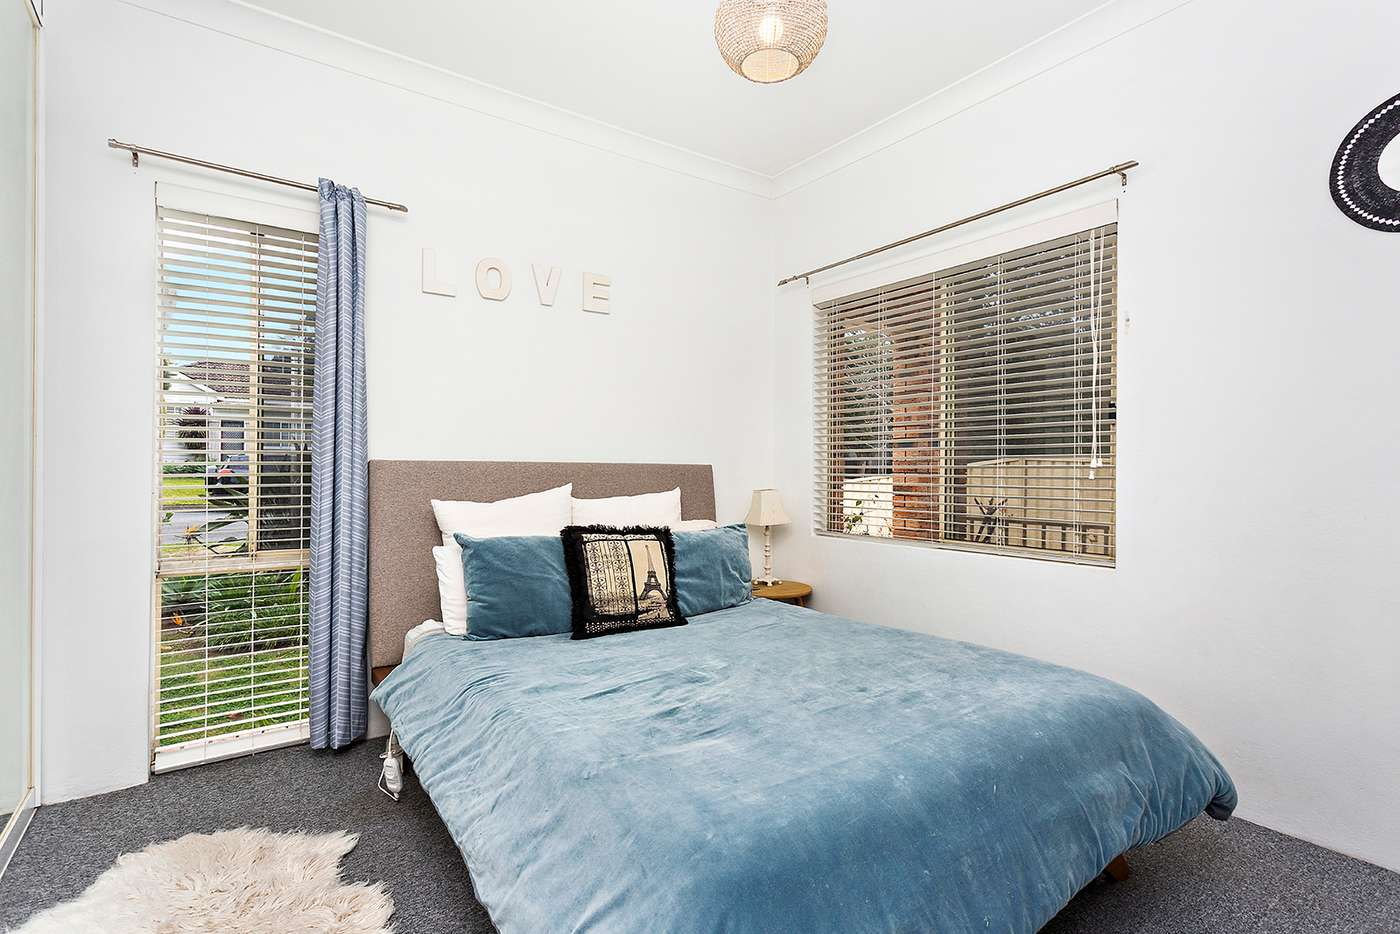 Fifth view of Homely unit listing, 1/9 England Street, West Wollongong NSW 2500